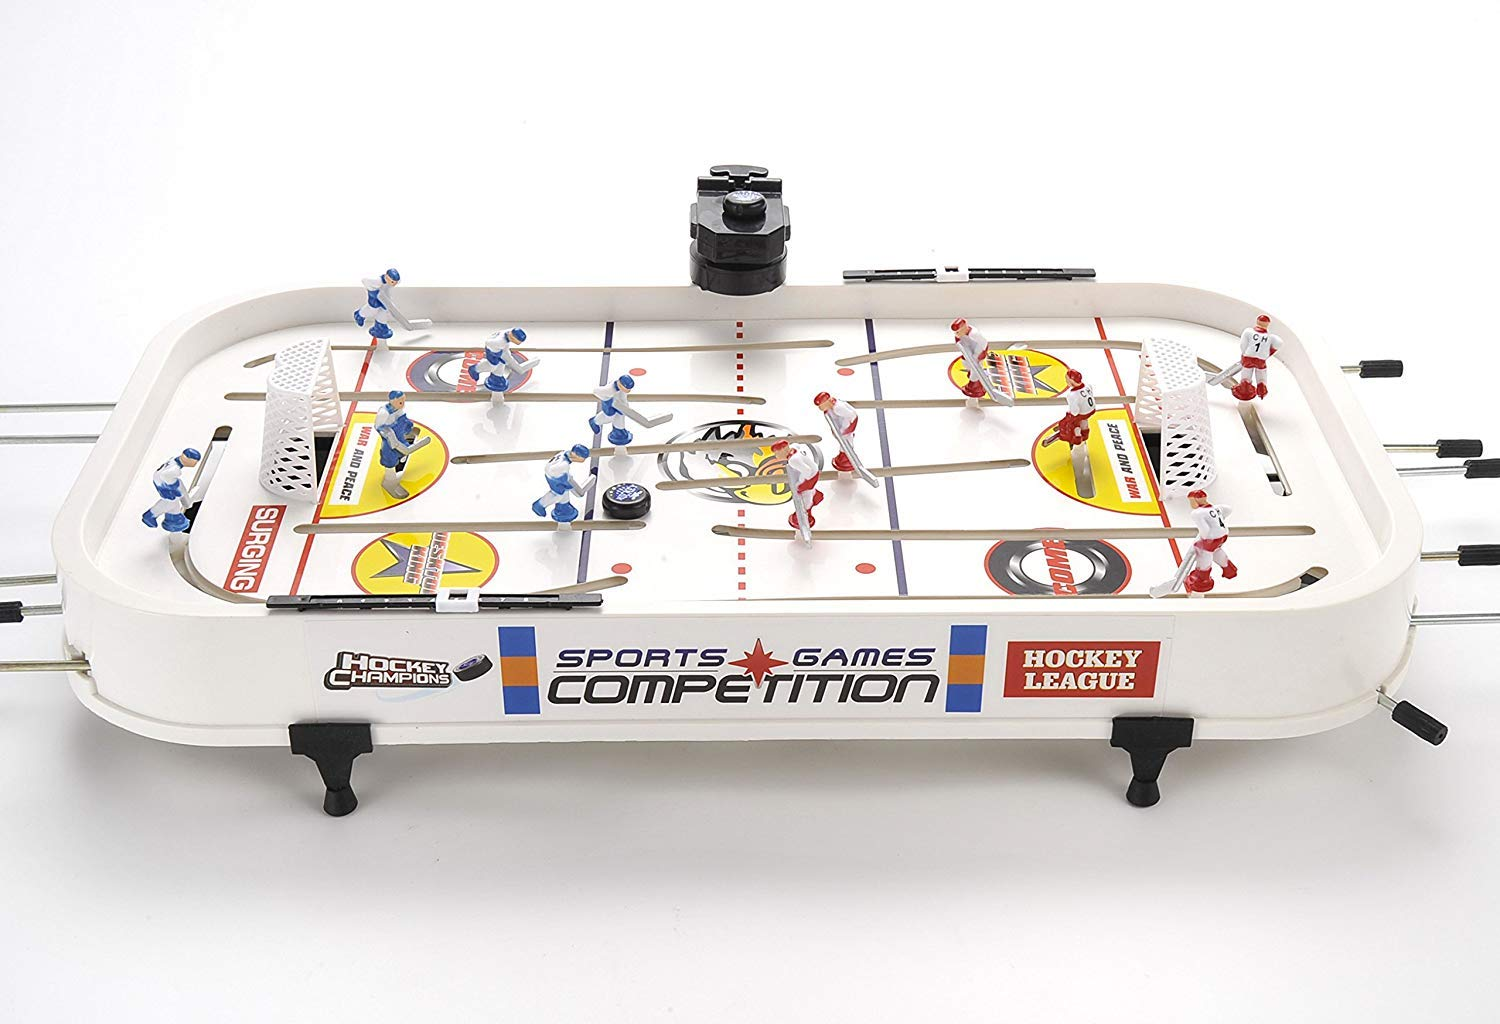 ManCave Games 20'' All Star Rod Hockey Game. Fast paced Head-to-Head Table Hockey Action! by ManCave Games